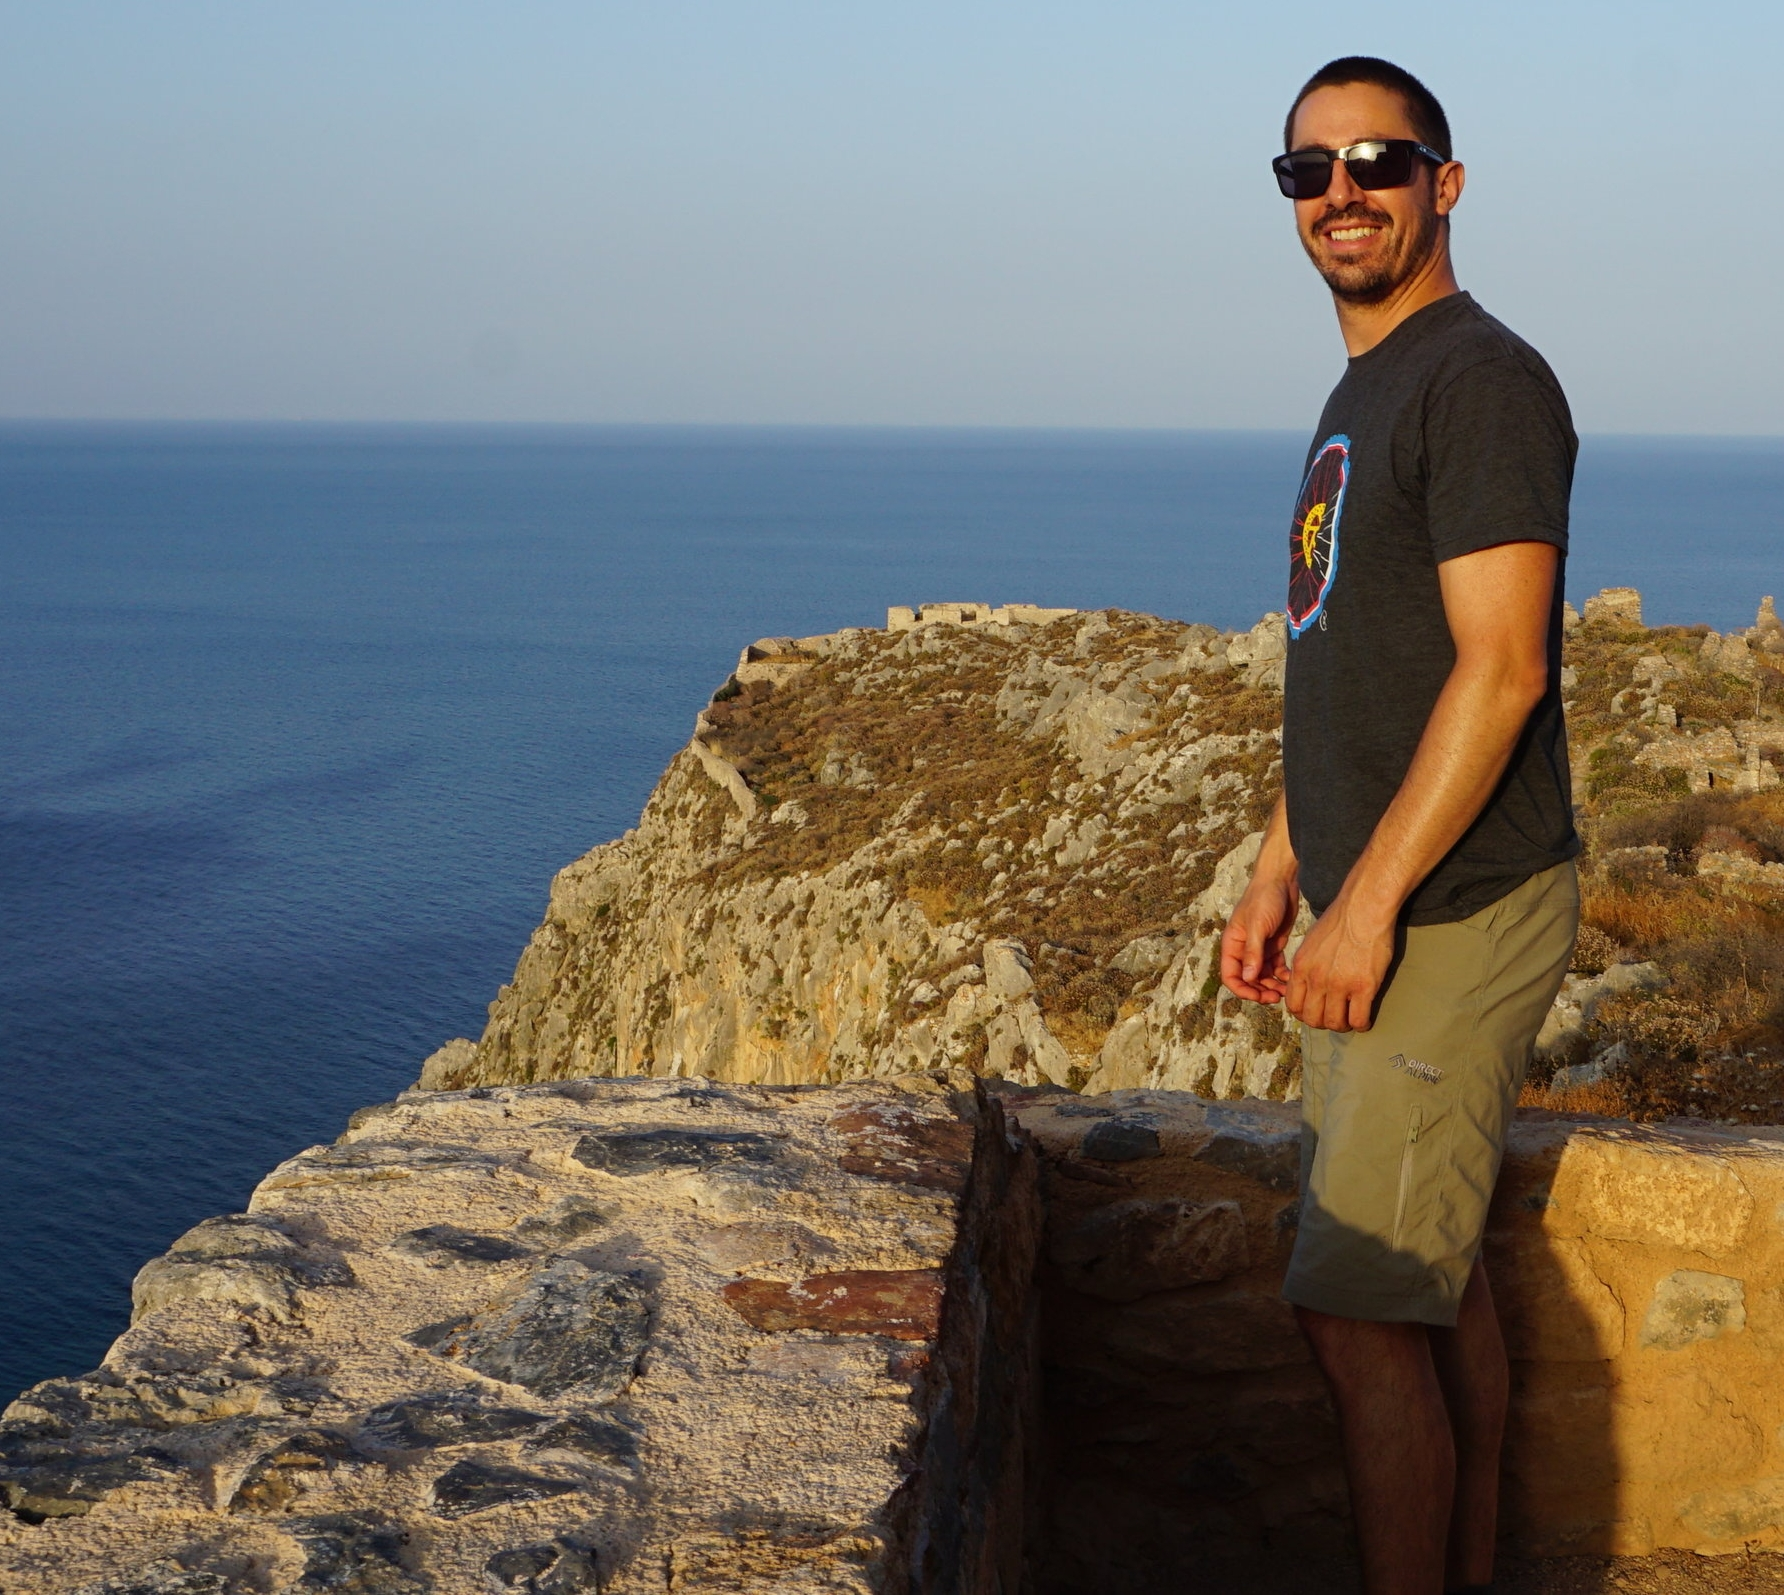 Roman Arguello - Assistant Professor SNSF, Department of Ecology & EvolutionGroup Leader, Swiss Inst. of Bioinformaticsroman.arguello@unil.chBrief CV [full CV]July 2018 - presentAssistant Professor, Department of Ecology and Evolution, University of Lausanne, Switzerland2012-2018Postdoc, University of Lausanne's Center for Integrative Genomics, Prof. Richard Benton's group,2008-2012Postdoc, Cornell University's Department of Molecular Biology and Genetics, Prof. Andrew Clark's group2002-2008PhD student, University of Chicago's Committee on Evolutionary Biology, Prof. Manyuan Long's groupSummer 2007JSPS Visiting Student in Prof. Hideki Innan Lab, Graduate University for Advanced Studies, Japan2000-2002Undergraduate Research Assistant in Prof. Stevan J. Arnold Lab, Oregon State University1997-2002BSc Oregon State University